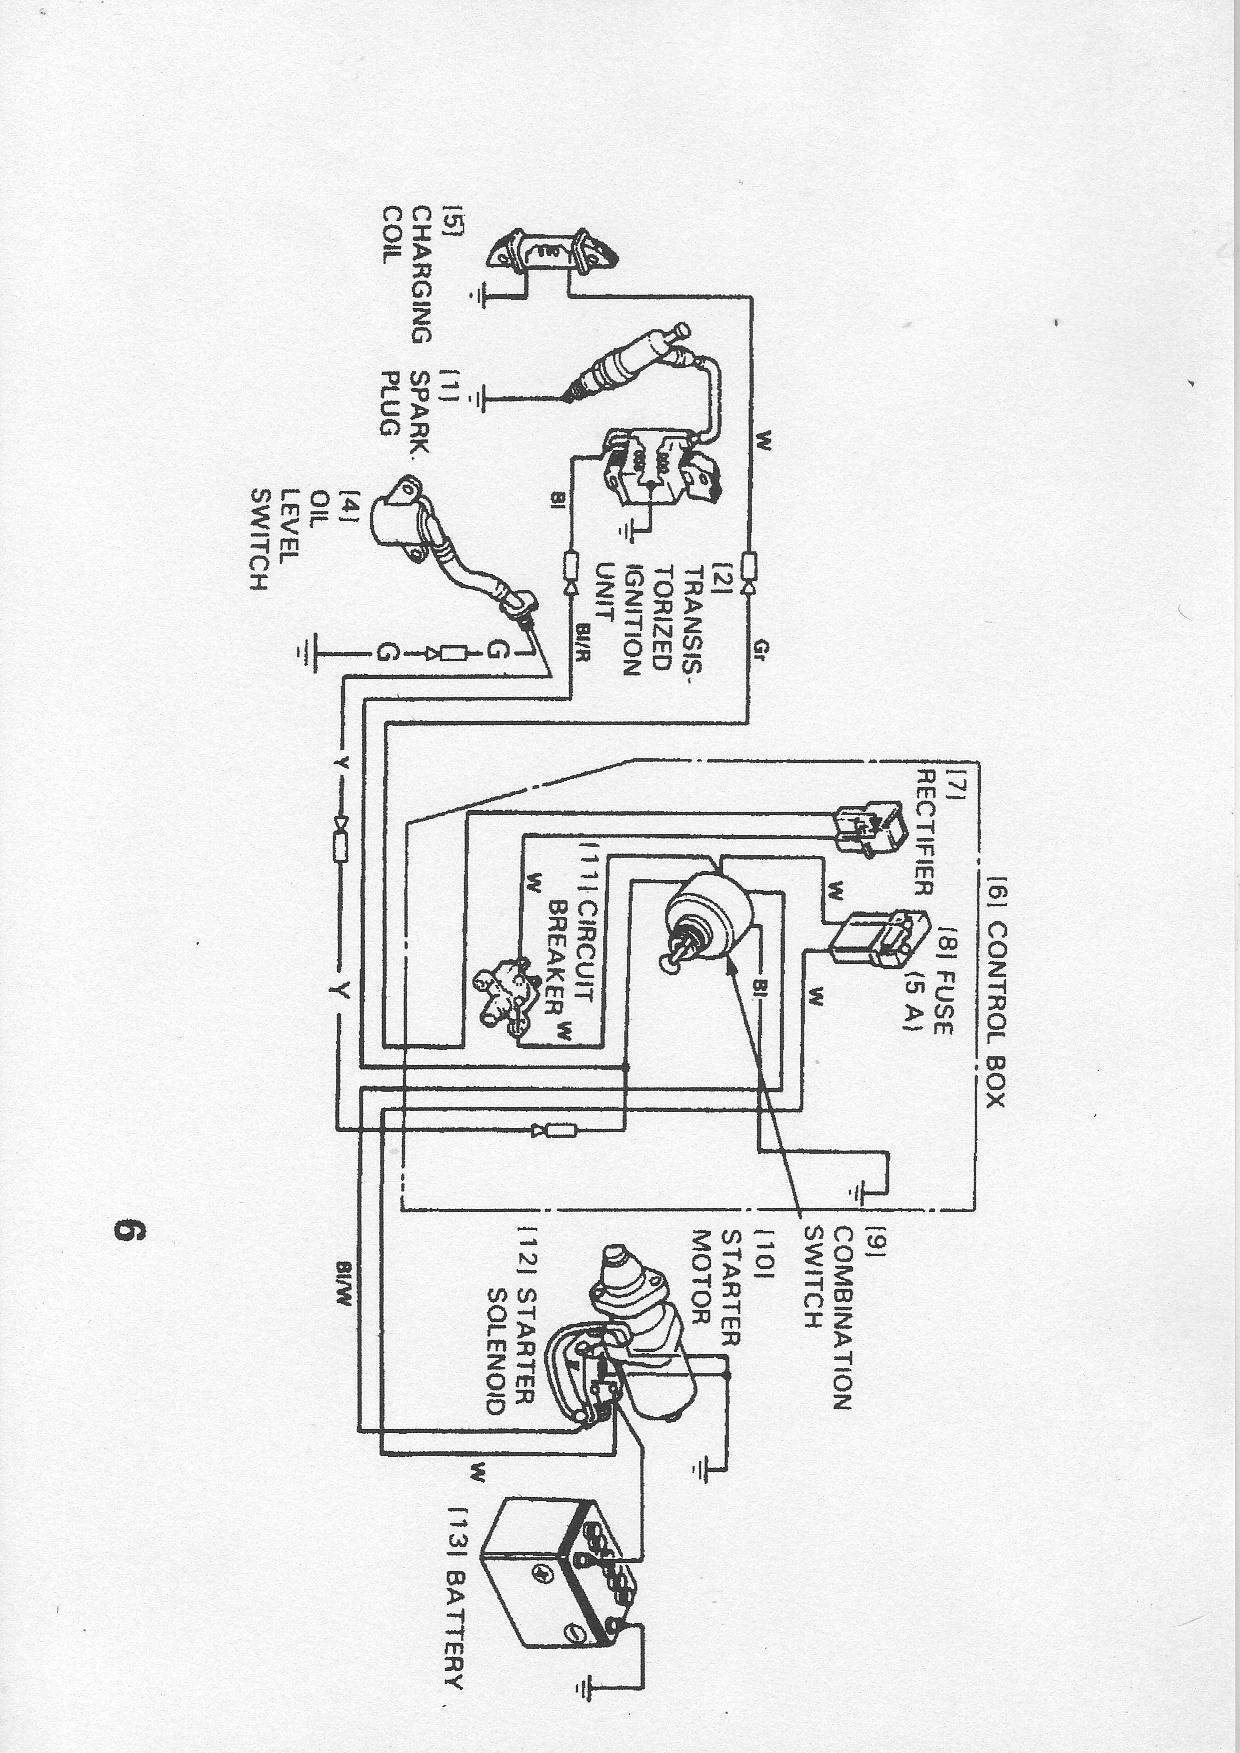 Honda Gx670 Engine Wiring Diagram on kohler engine starter wiring diagram